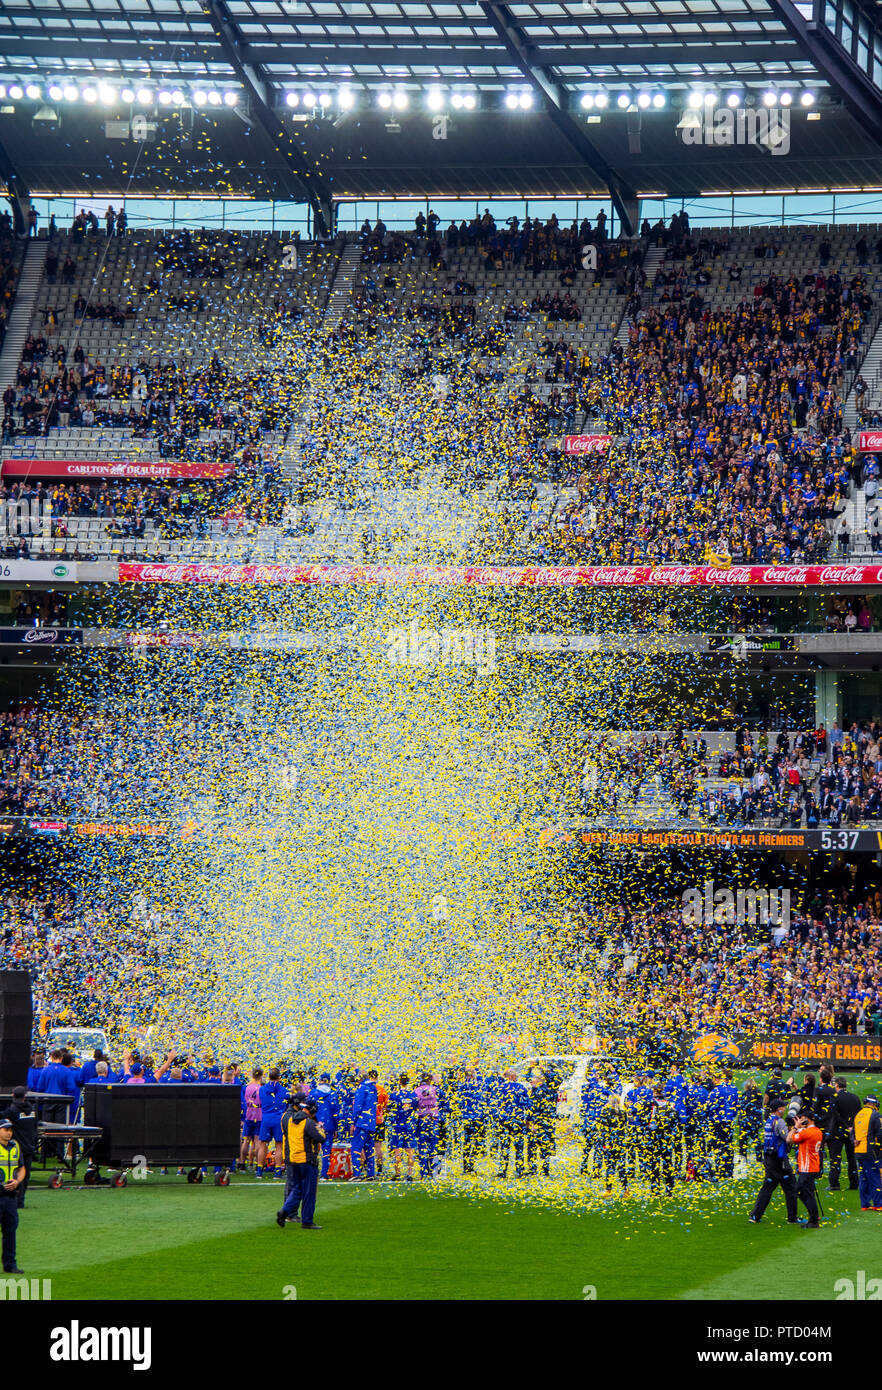 Confetti, West Coast Eagles premiership players celebrating after 2018 AFL Grand Final at MCG Melbourne Victoria Australia. - Stock Image